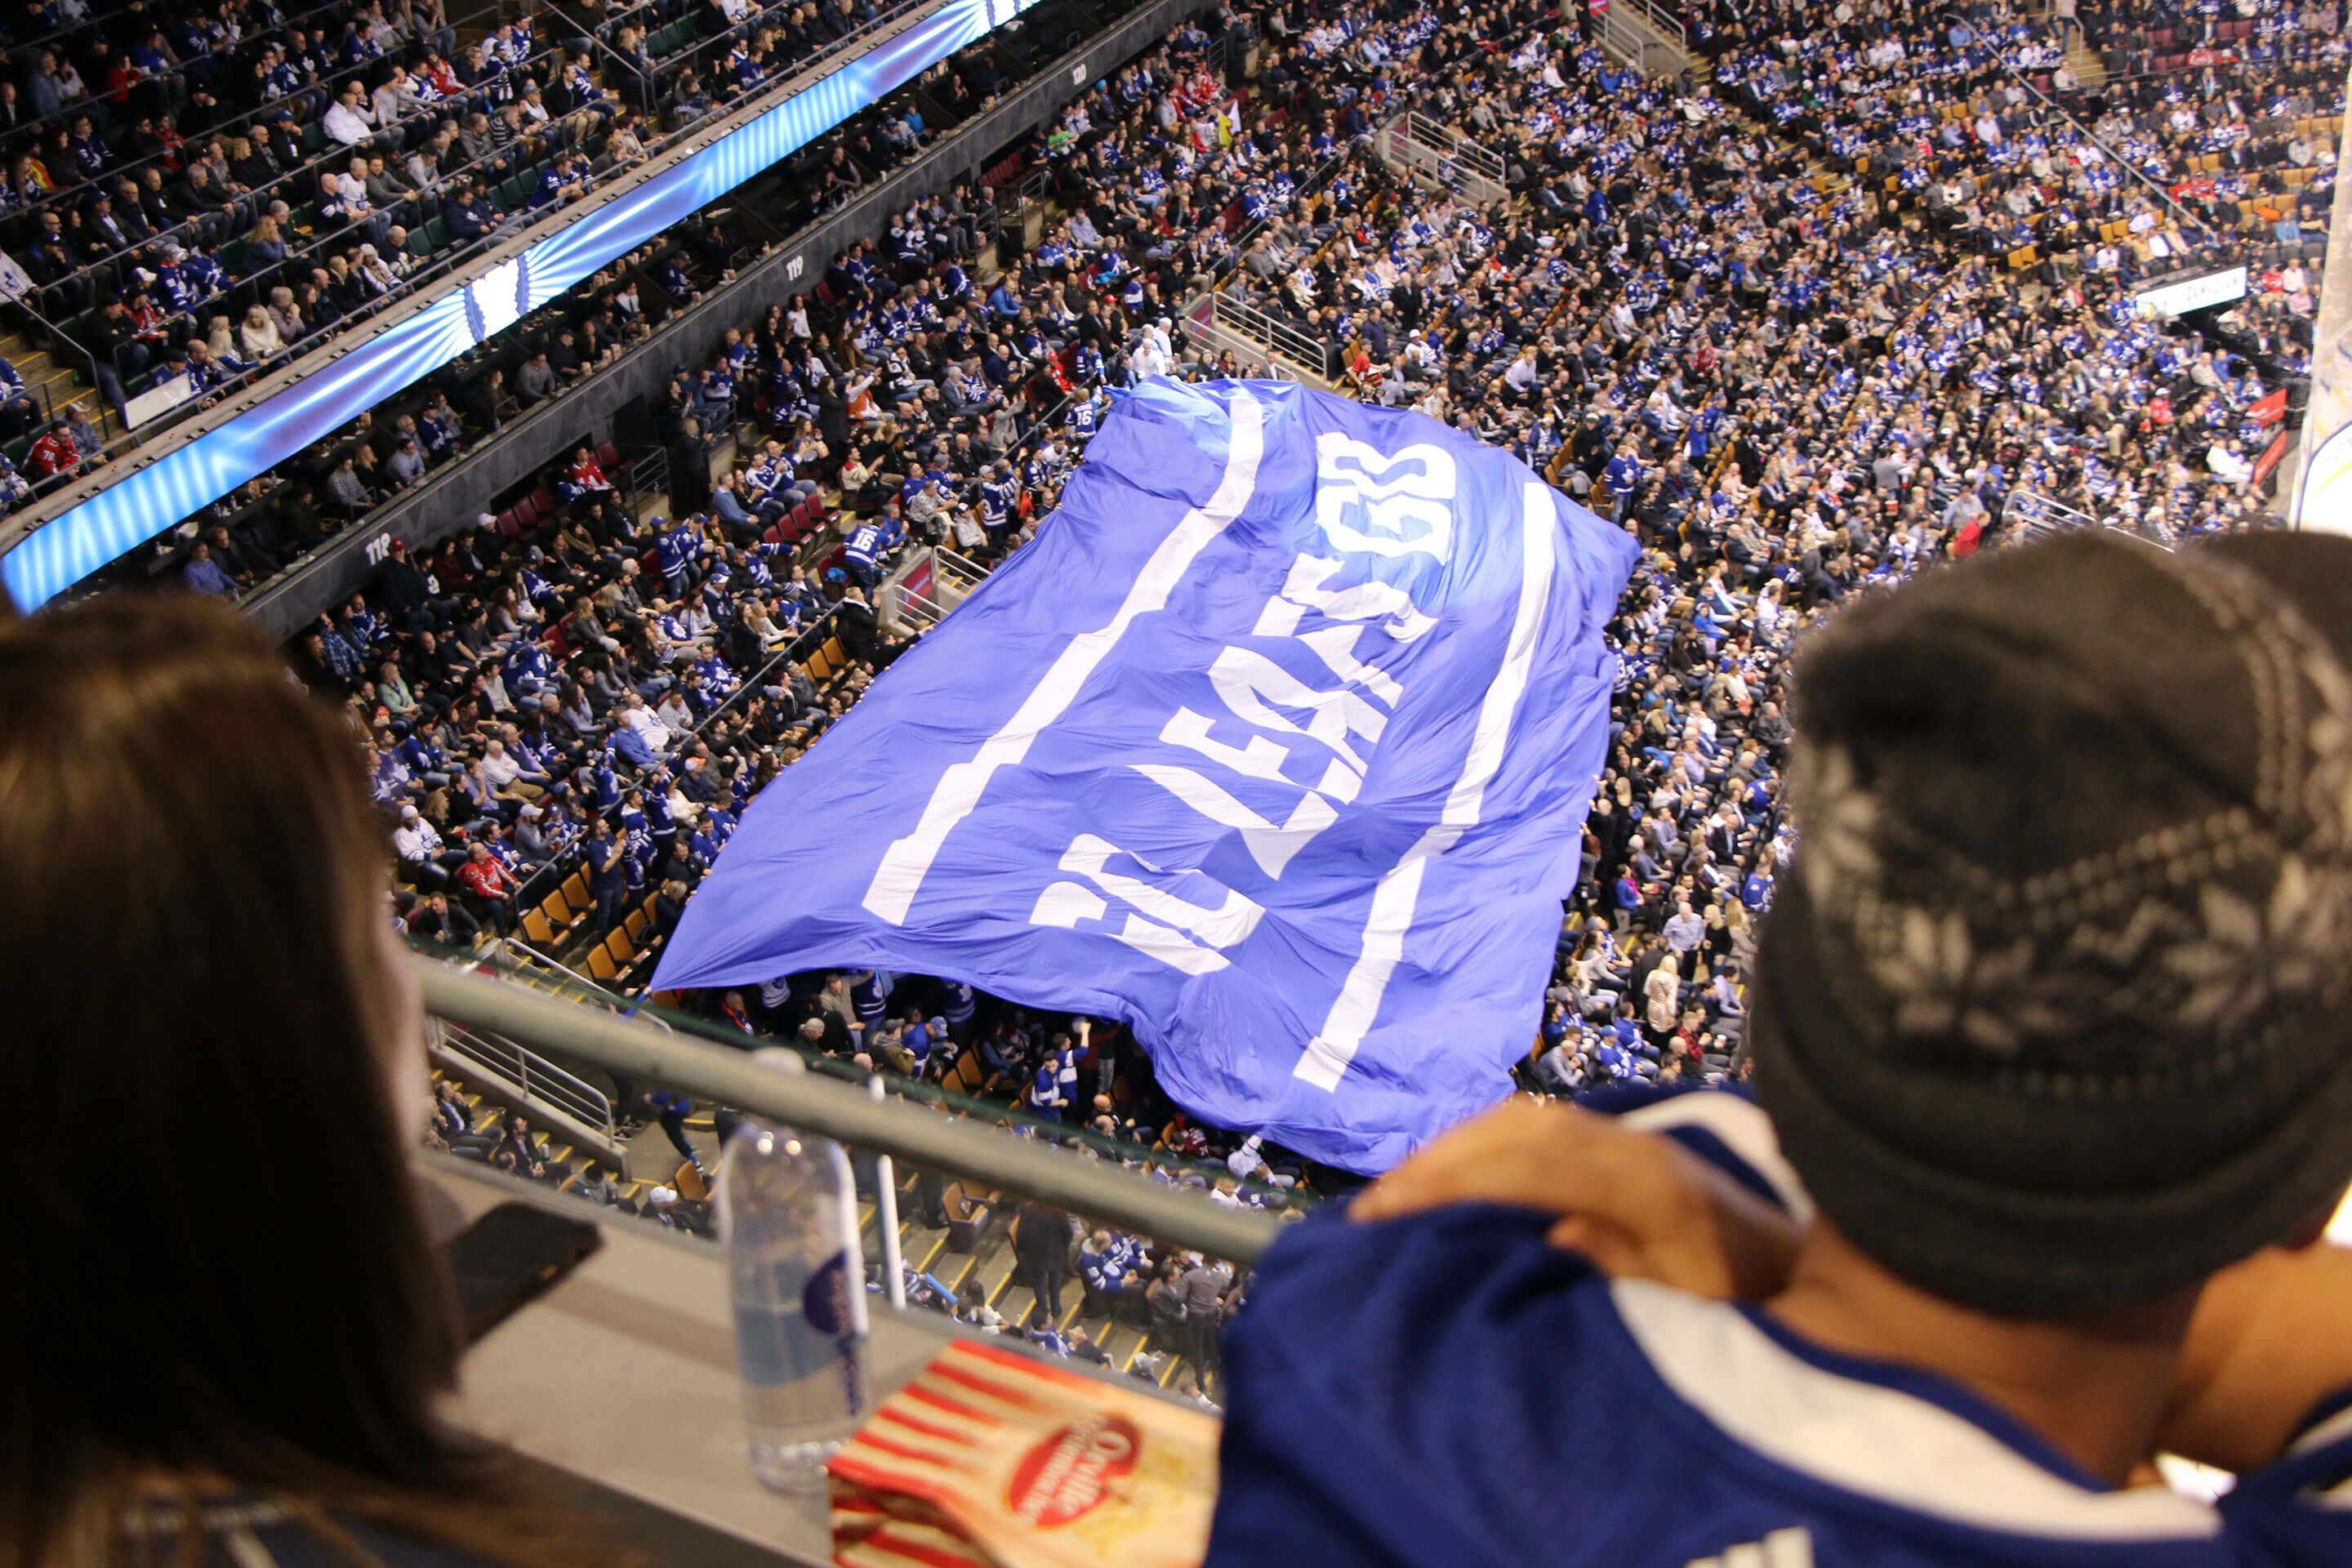 Toronto Maple Leafs fans during hockey game